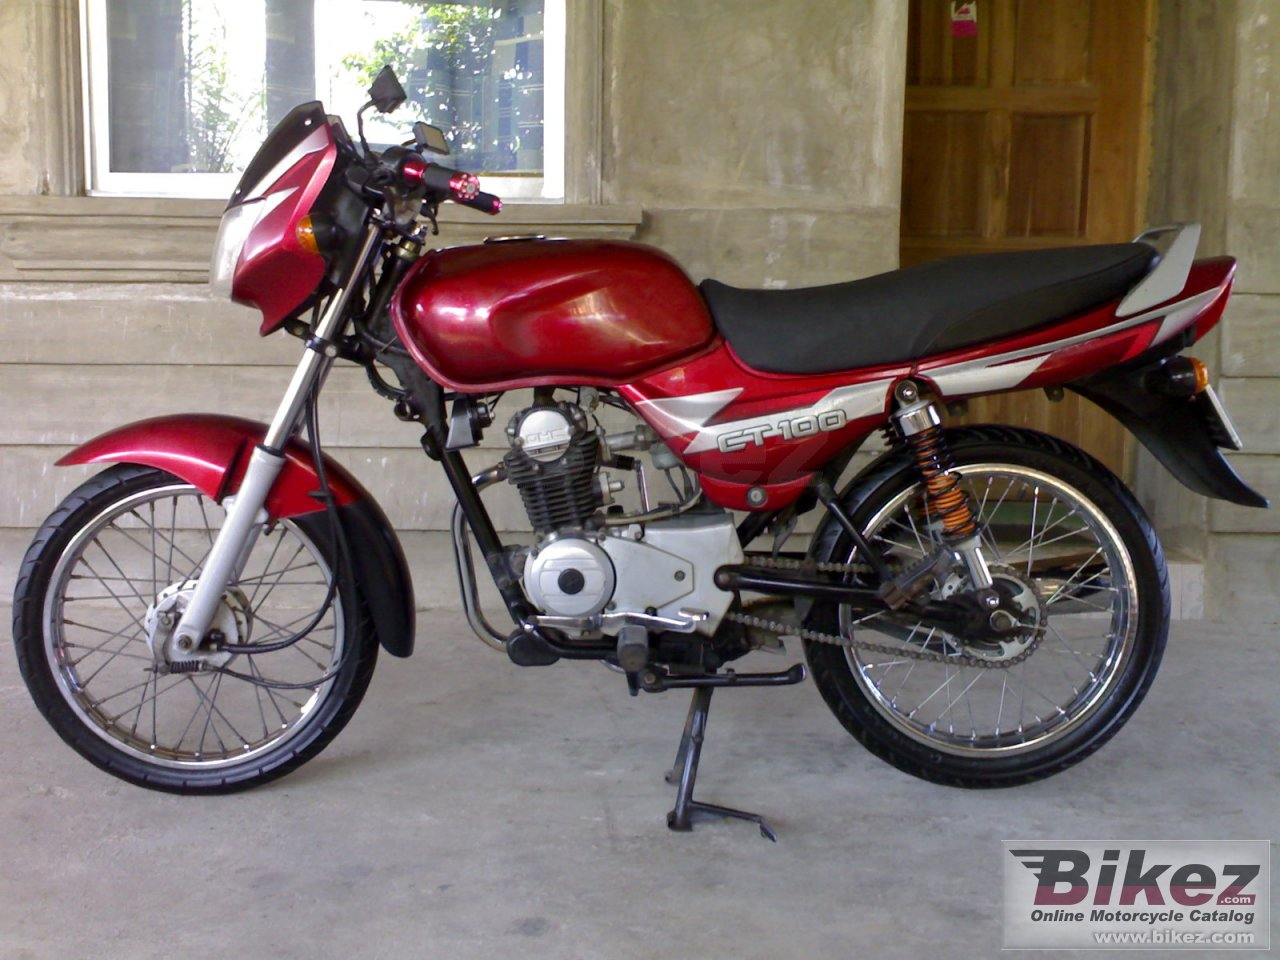 Ct 100 Bike Wiring Diagram Bajaj Platina Image Ct100 Specifications And Pictures 2007